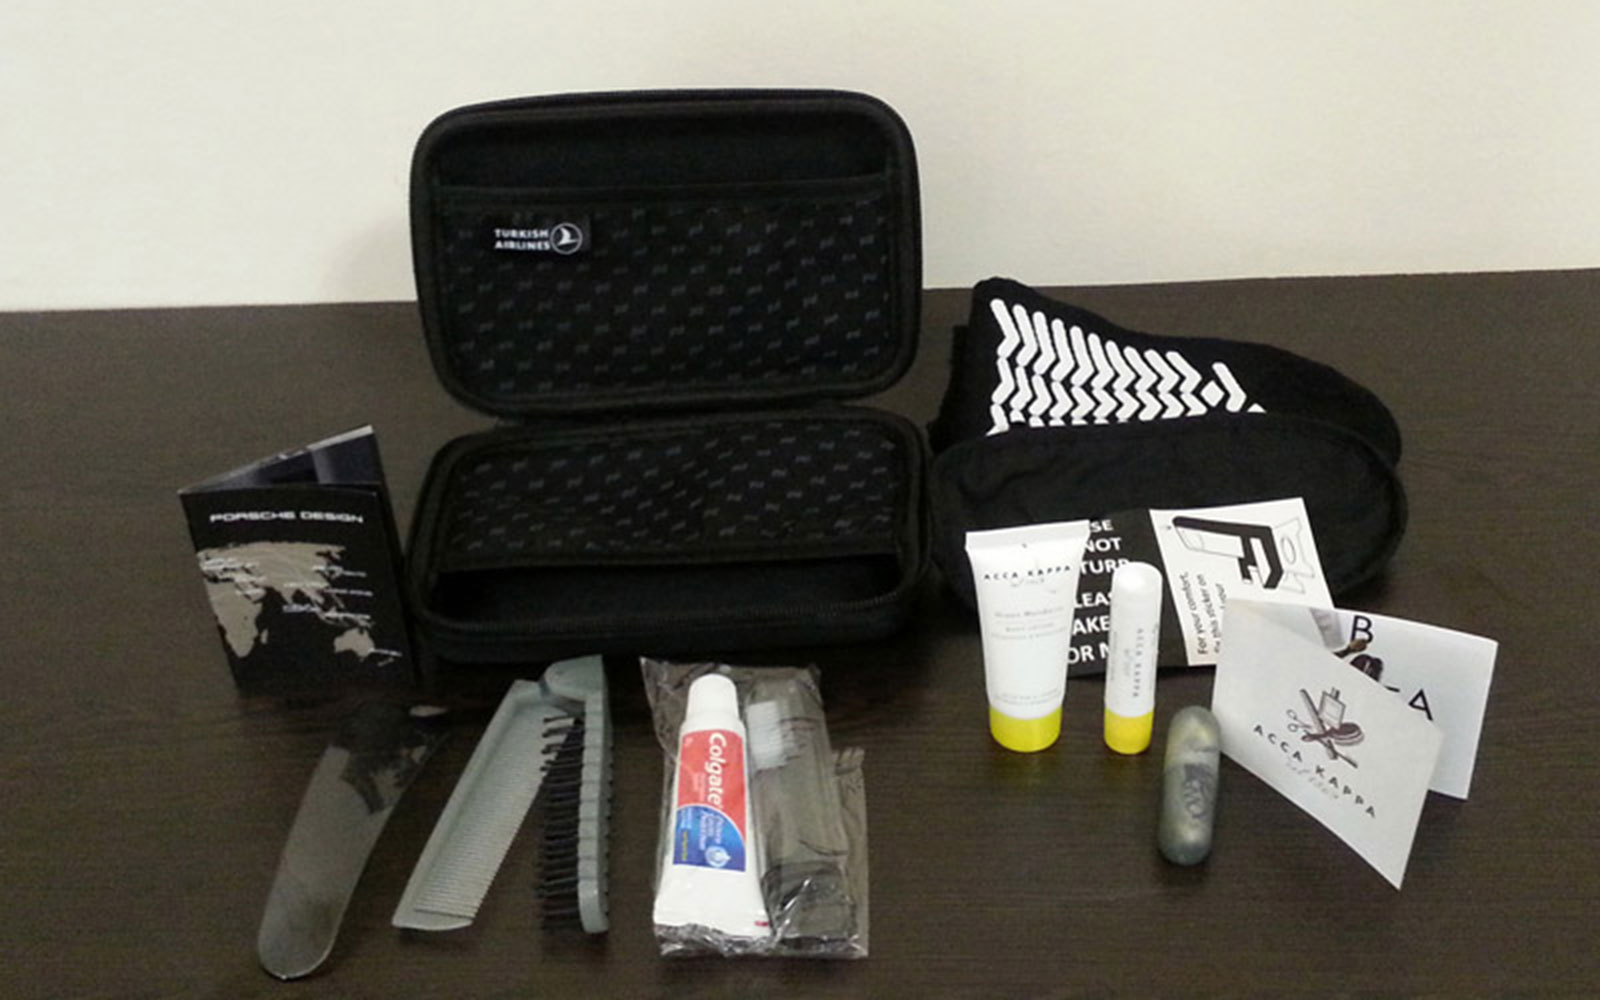 Coolest Airline Amenity Kits: Turkish Airlines First Class Porsche Amenity Kit